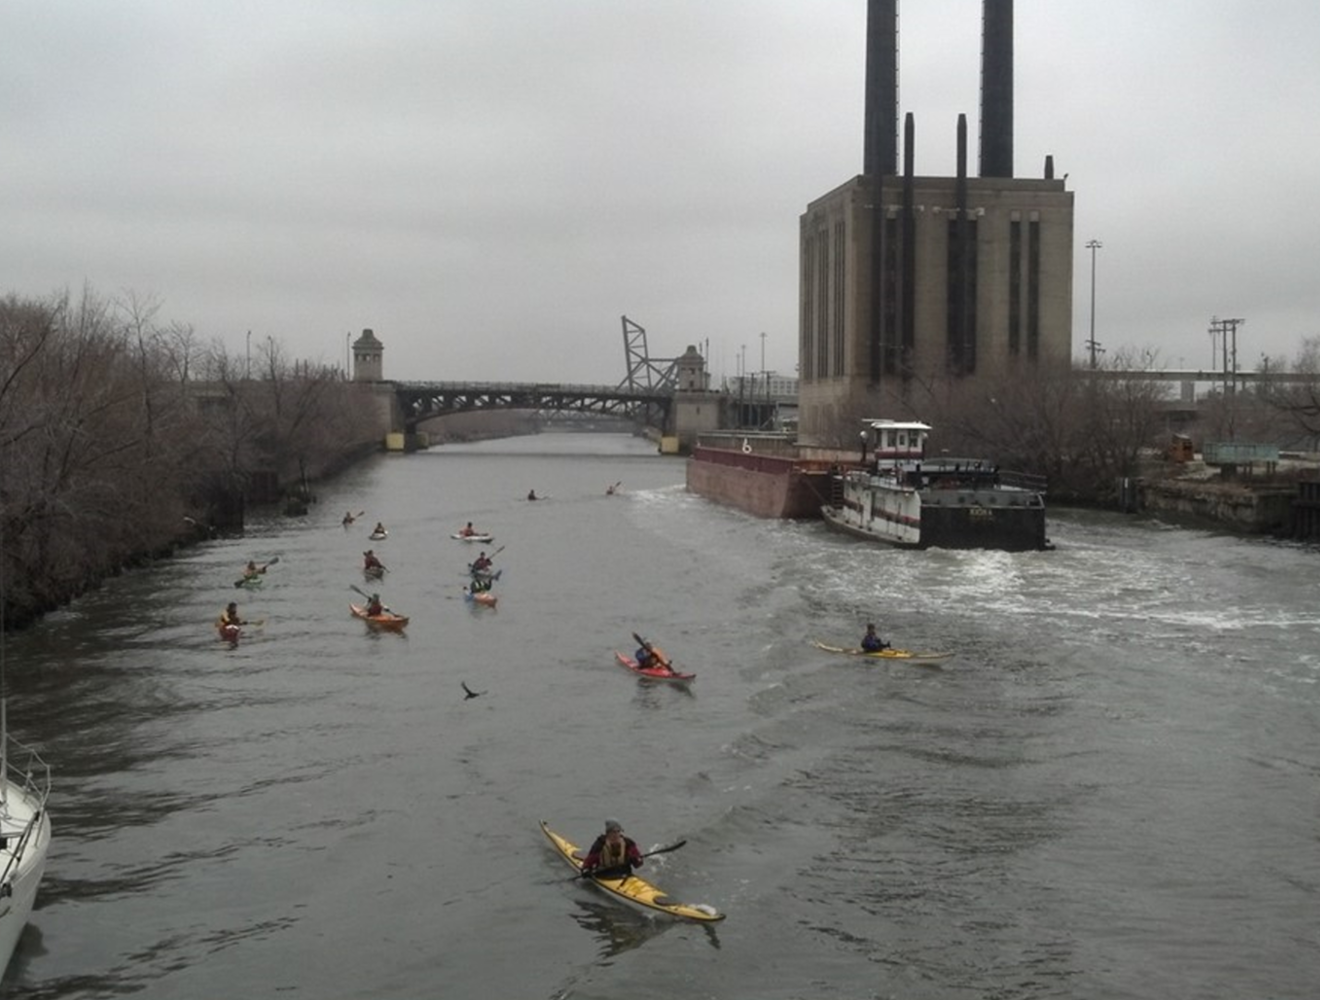 In this photo, kayakers are operating in close proximity to a barge and towing vessel in the Chicago River.